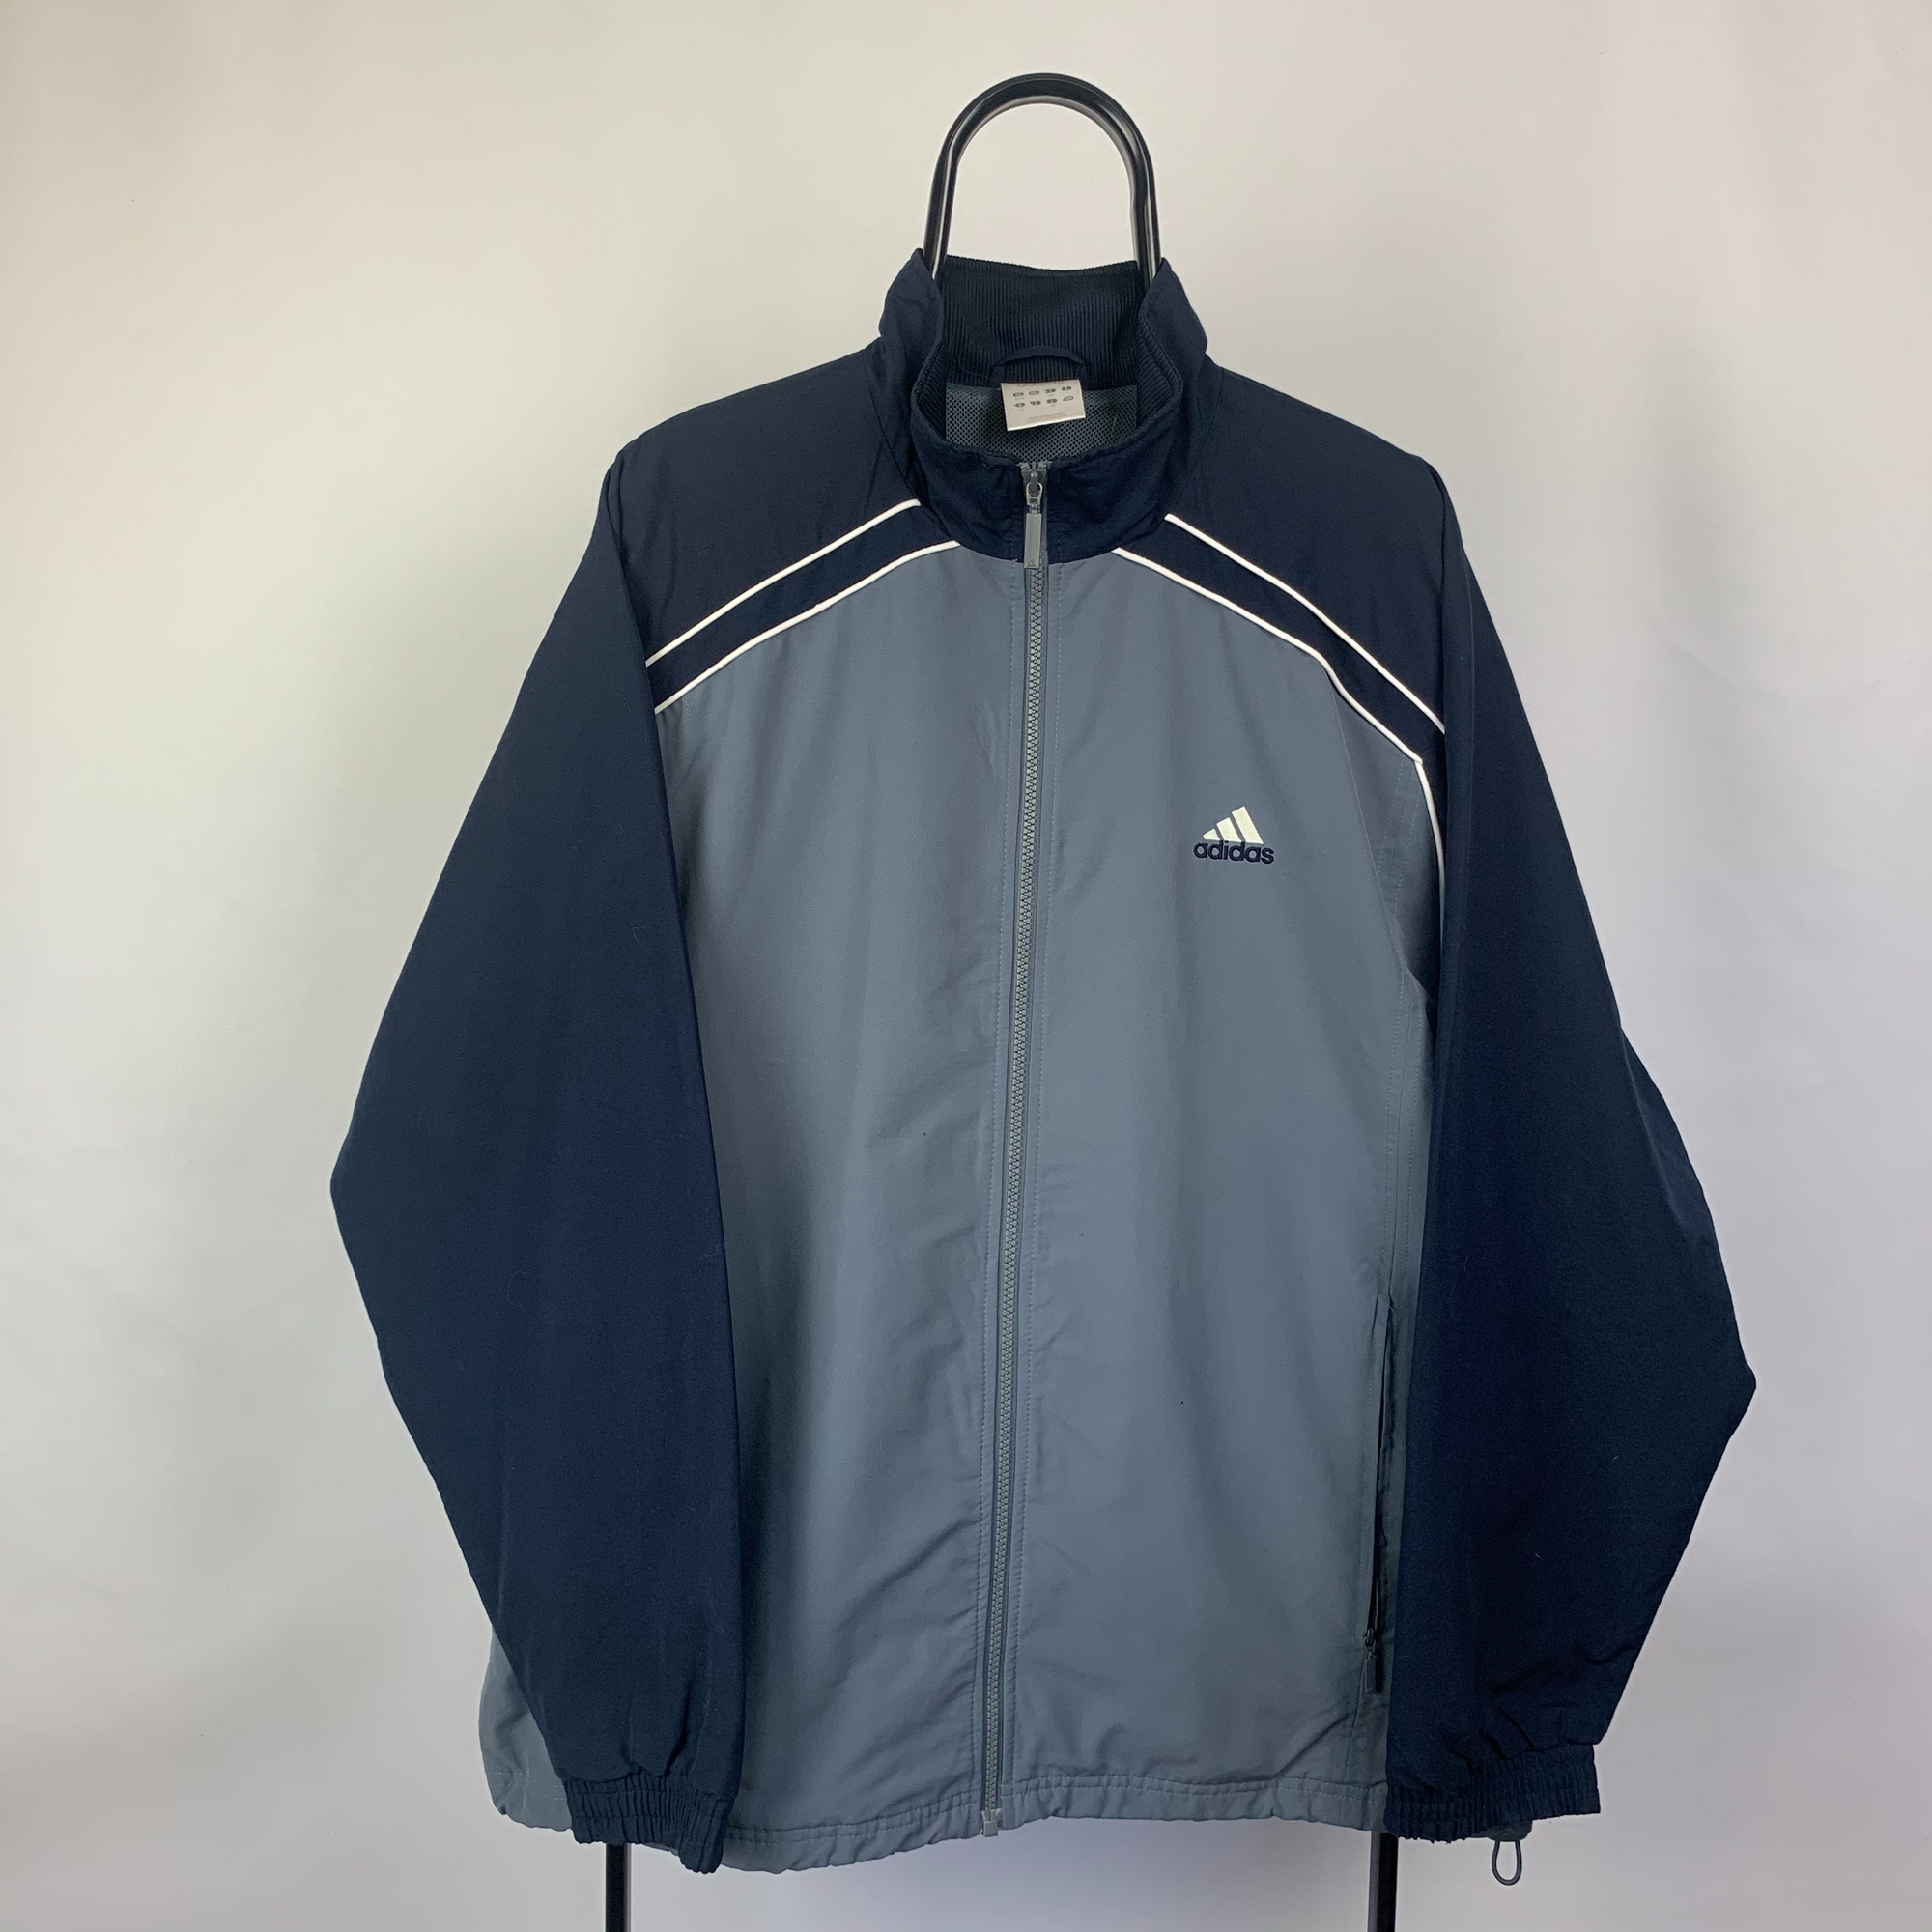 Vintage Adidas Track Jacket in Blue - Men's Large/Women's XL